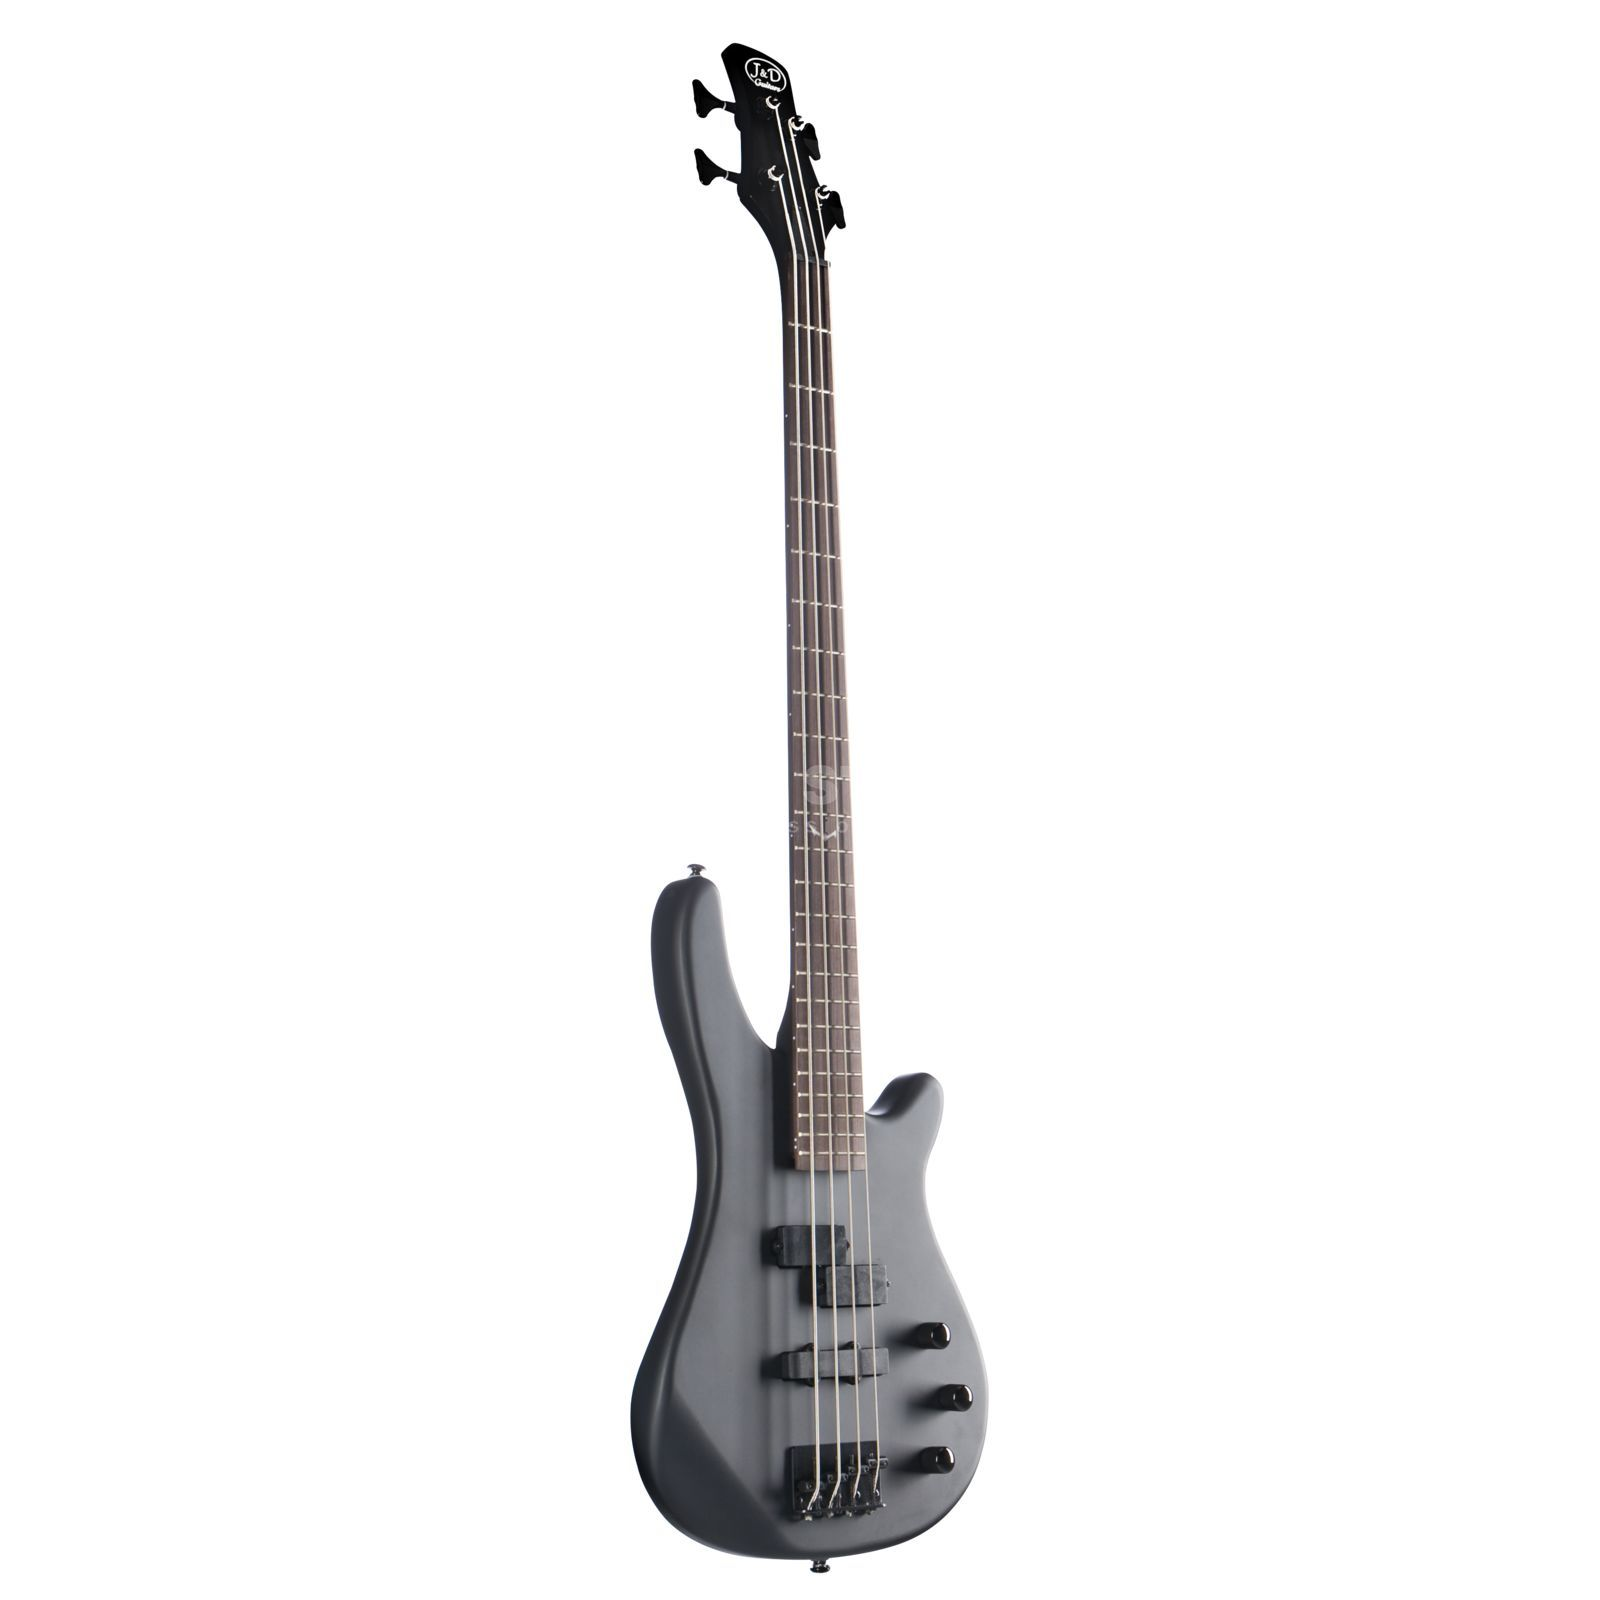 Jack & Danny Bass guitar 150 Special Bat Mark BKM Product Image